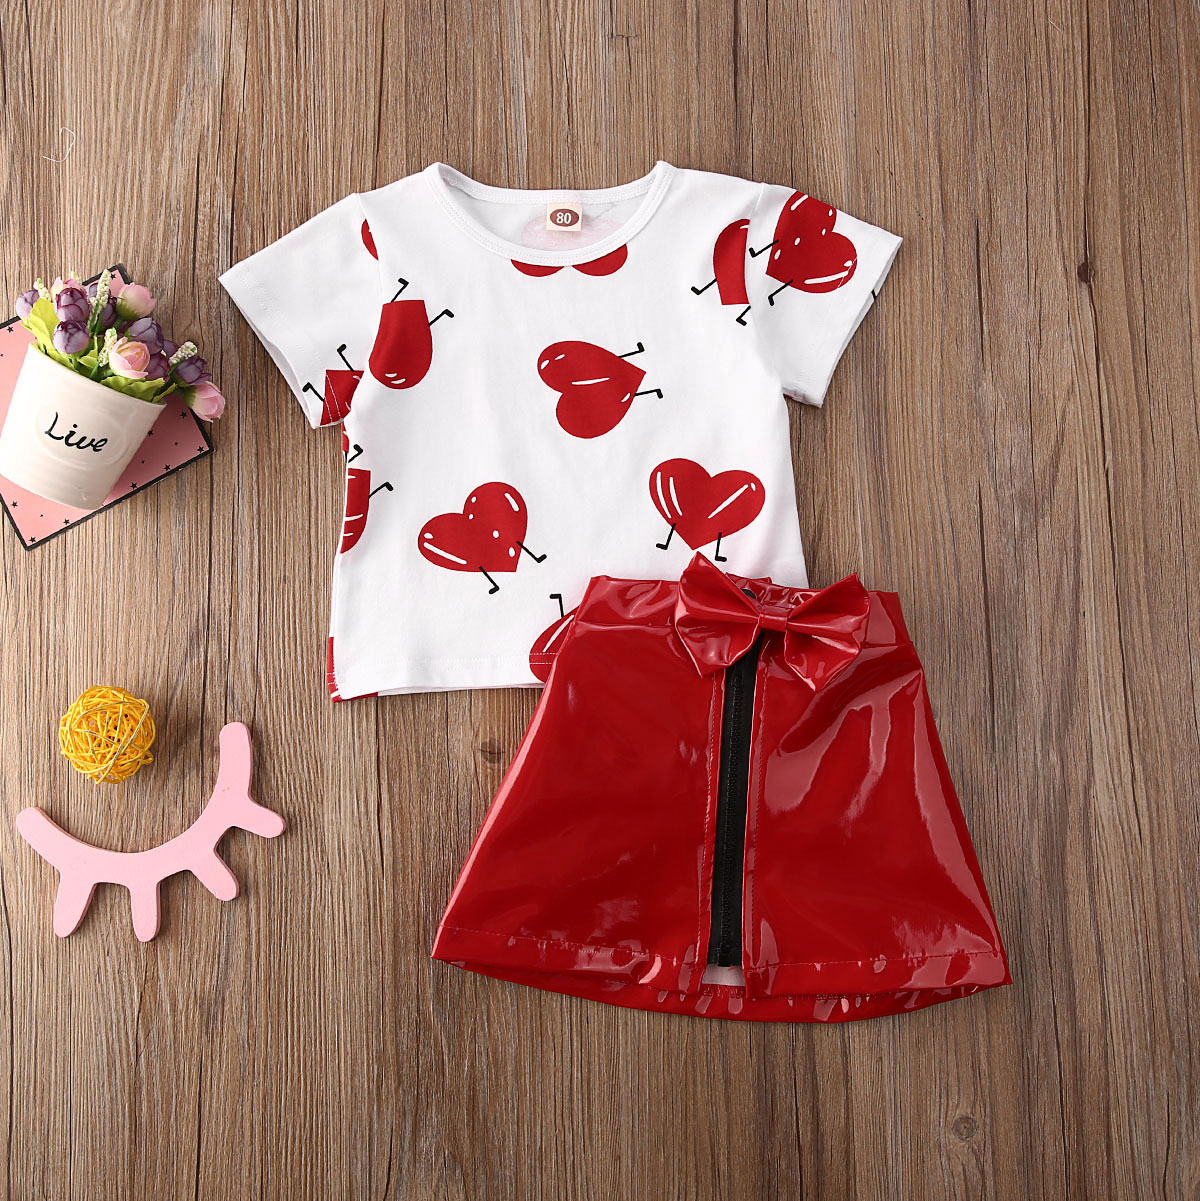 Pudcoco Toddler Baby Girl Clothes Valentine Love Peach Heart Print T-Shirt Tops Leather Skirt 2Pcs Outfits Clothes